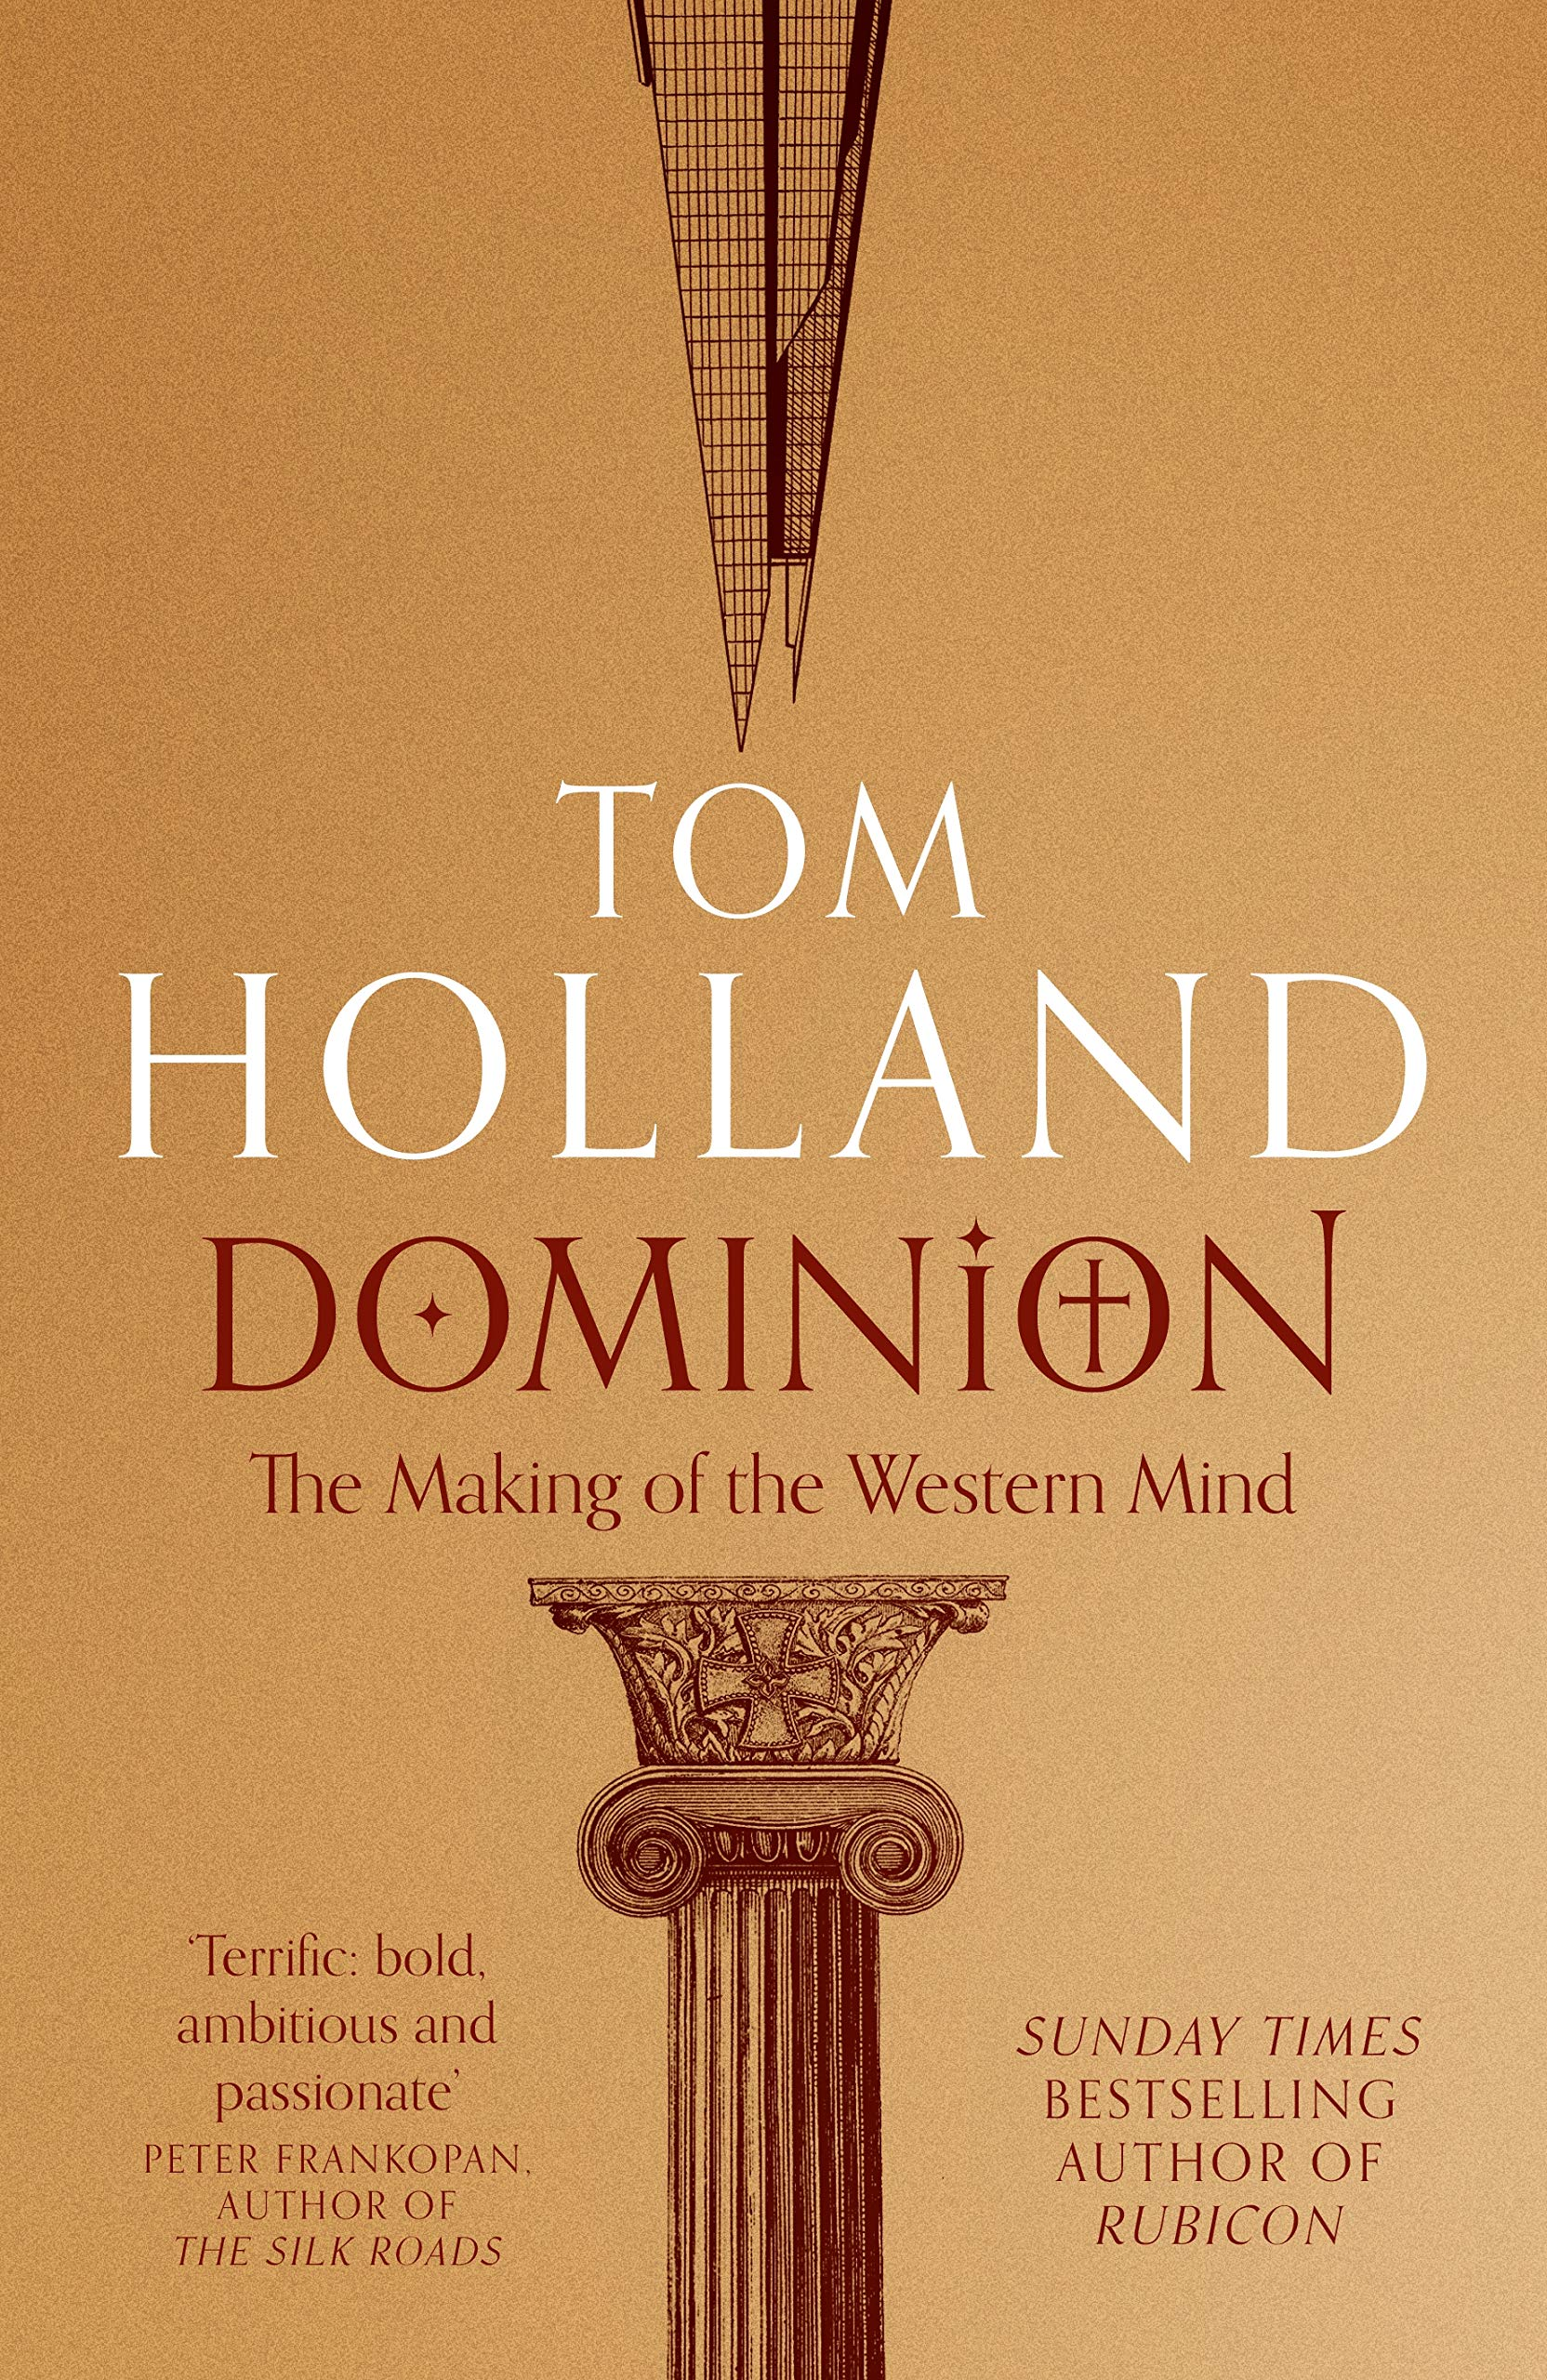 Image result for dominion tom holland